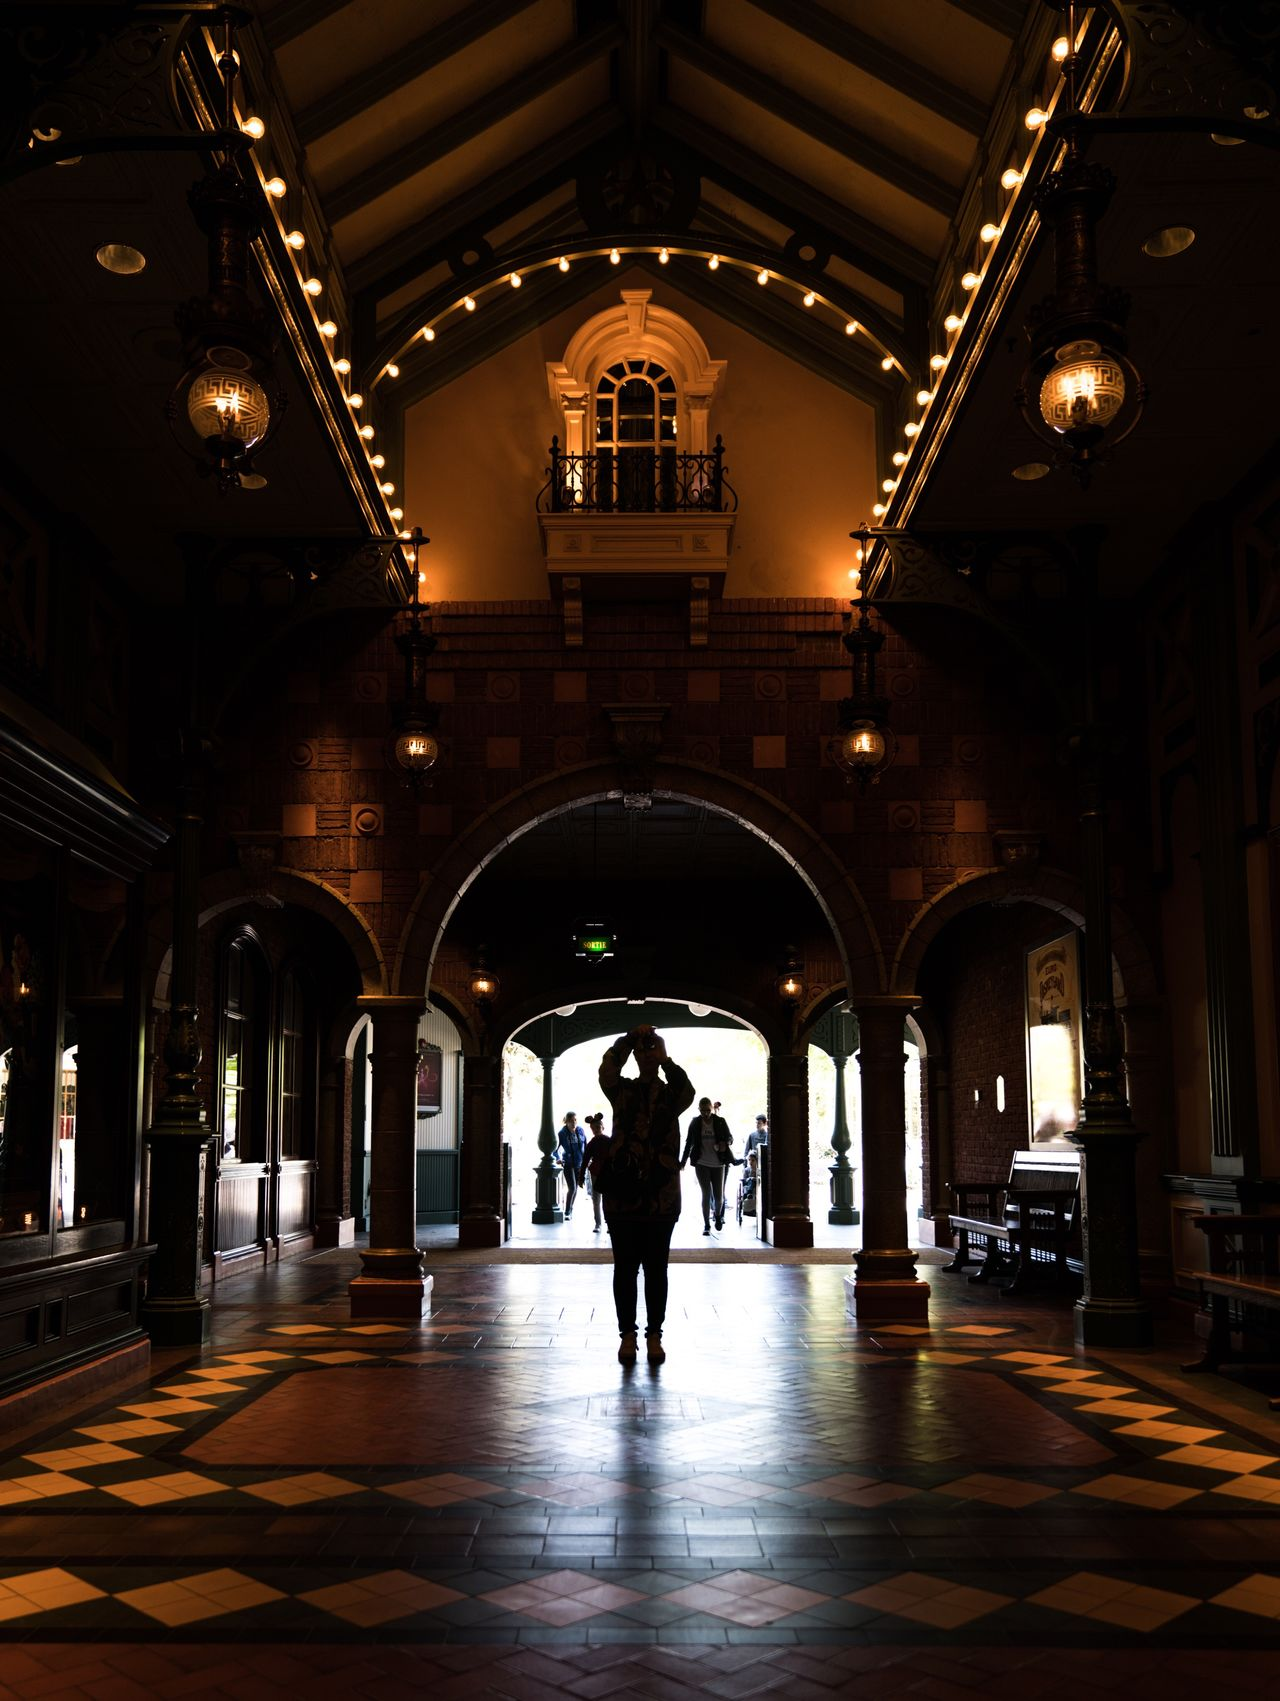 Picture Perfect. Arch Indoors  Architecture Corridor Built Structure Silhouette Disney Disneyland Disneyland Paris Taking Photos Taking Pictures Theme Park Hallway Light And Shadow